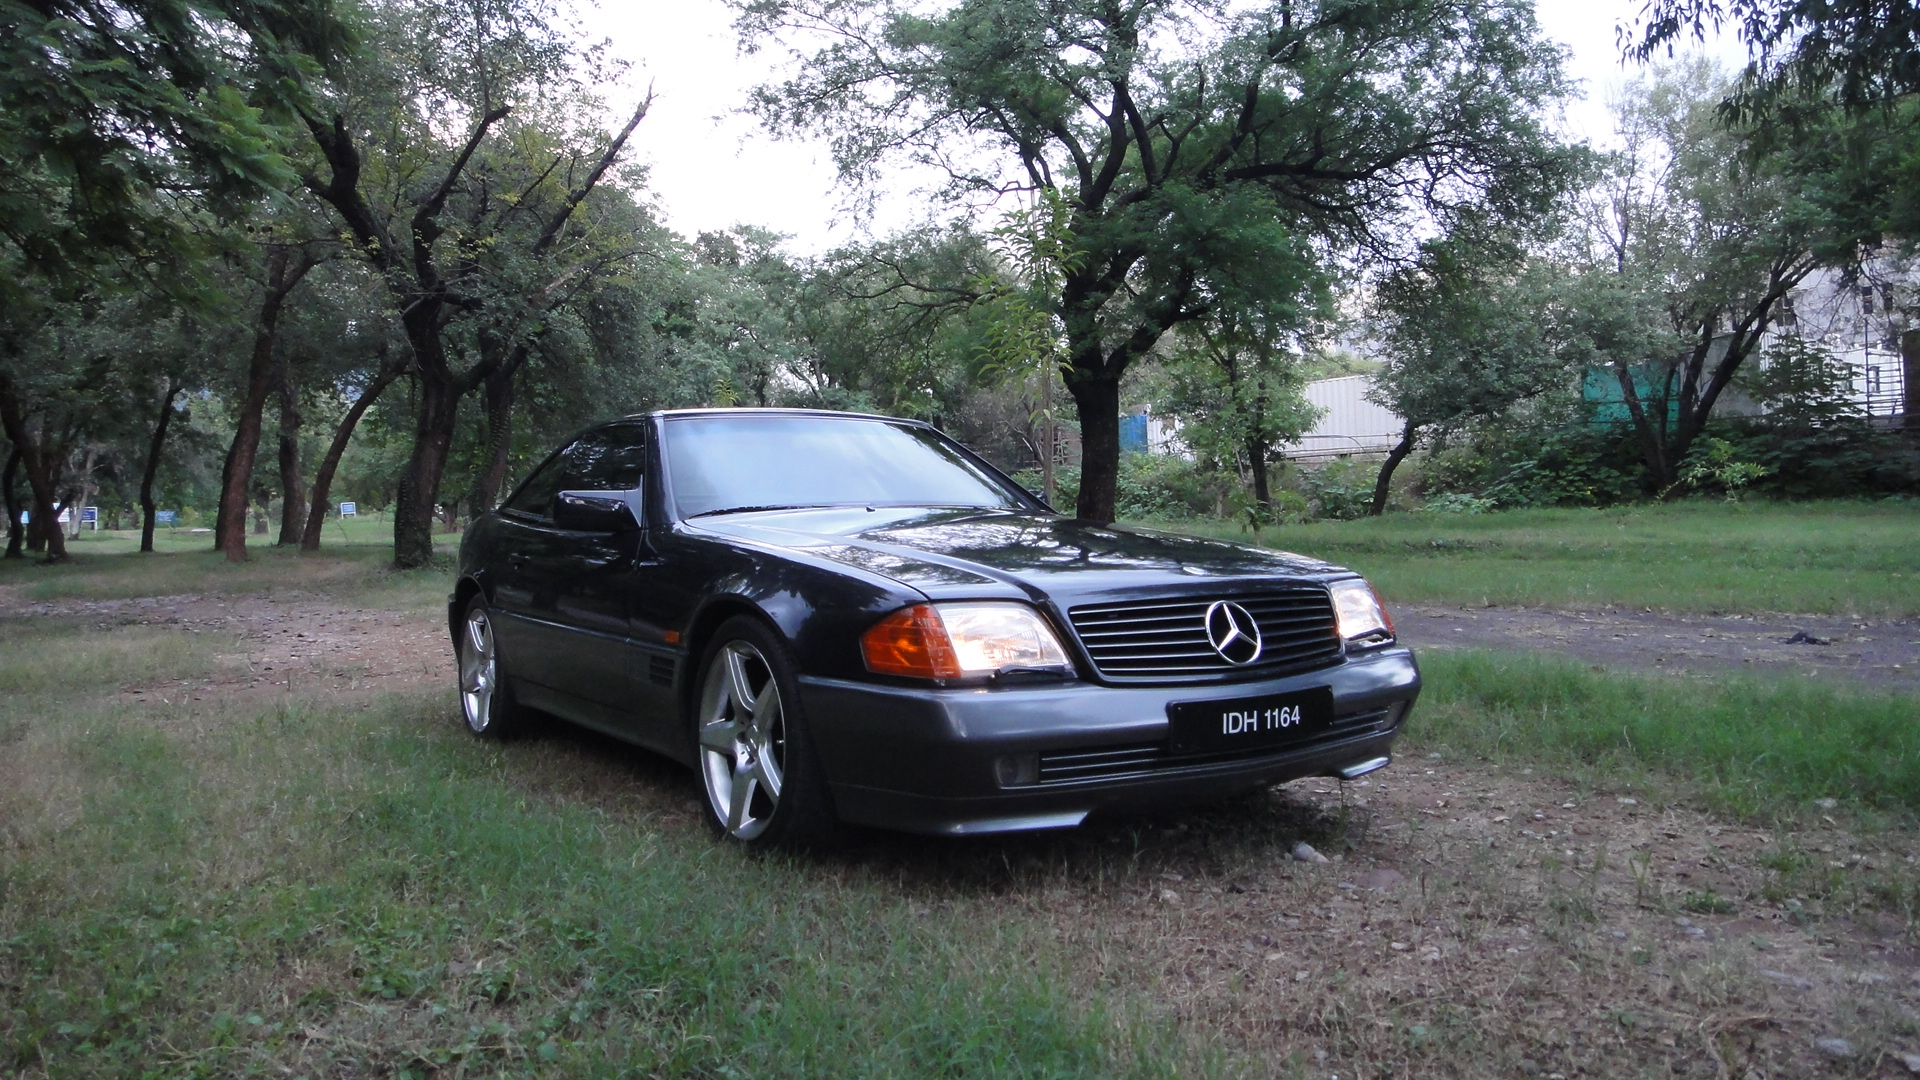 Mercedes benz a class 1992 of danyal member ride 16847 for 1992 mercedes benz sl500